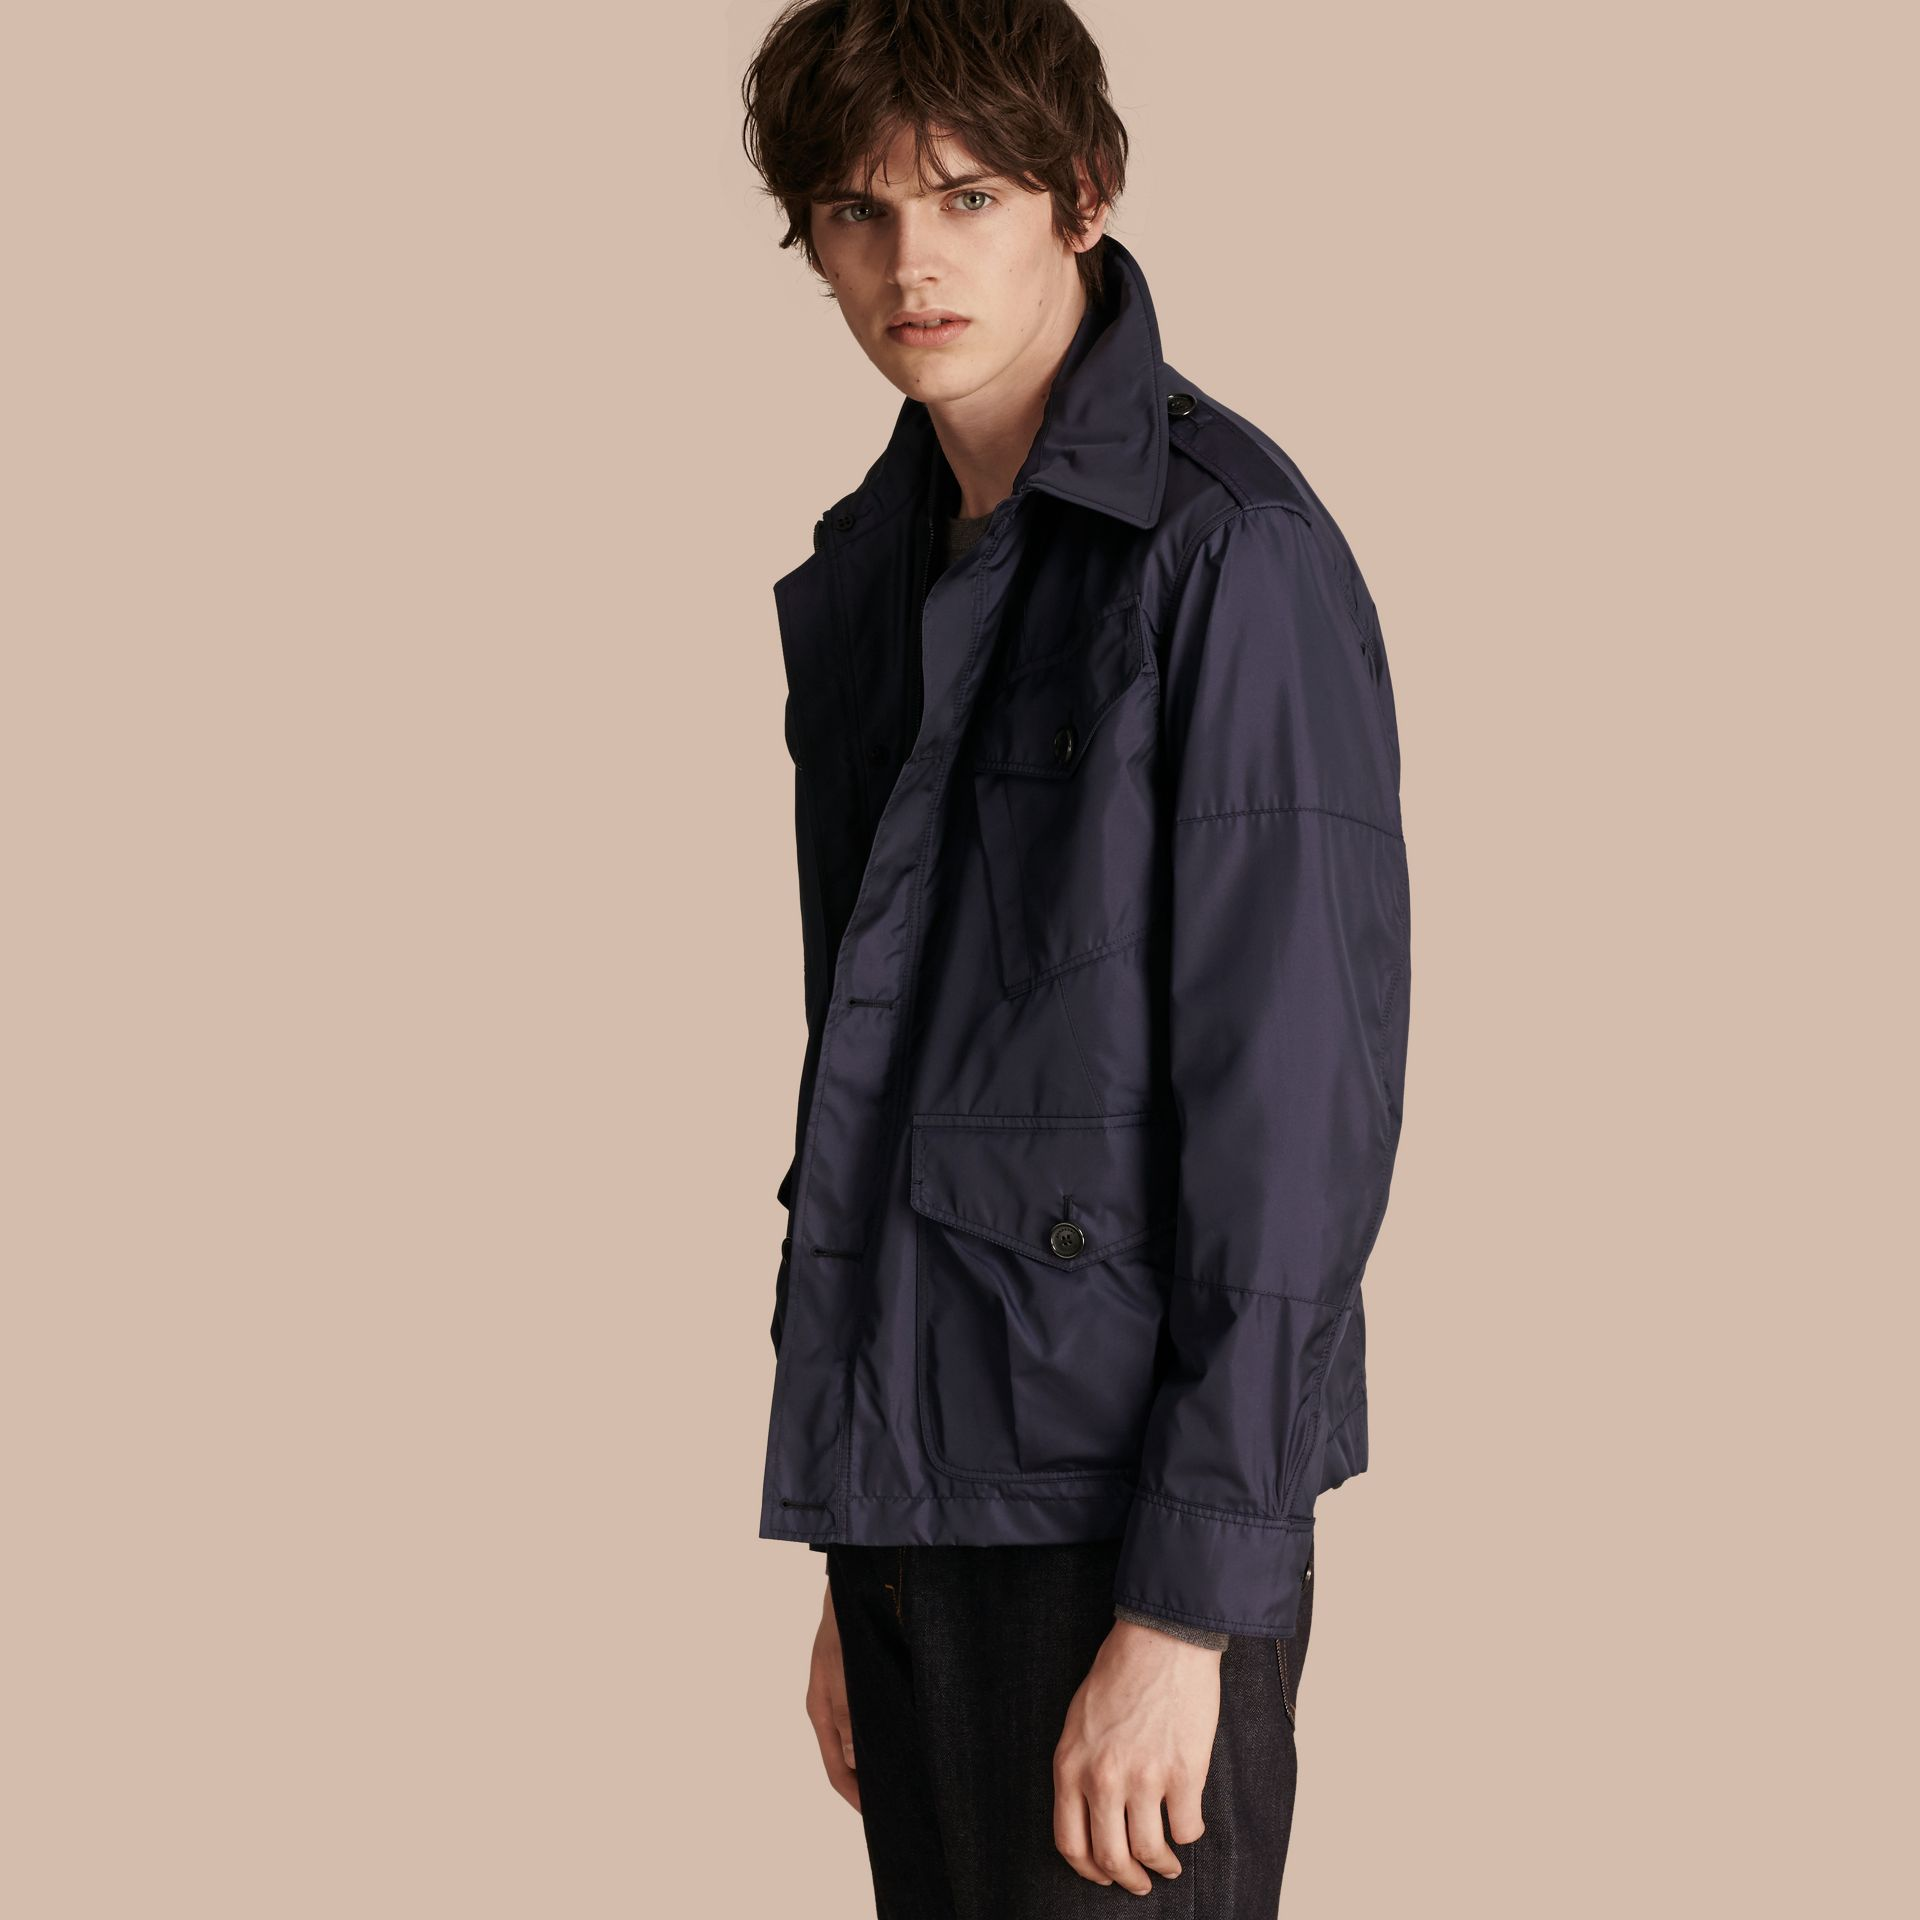 Ultramarine Silk Blend Field Jacket with Detachable Warmer - gallery image 1